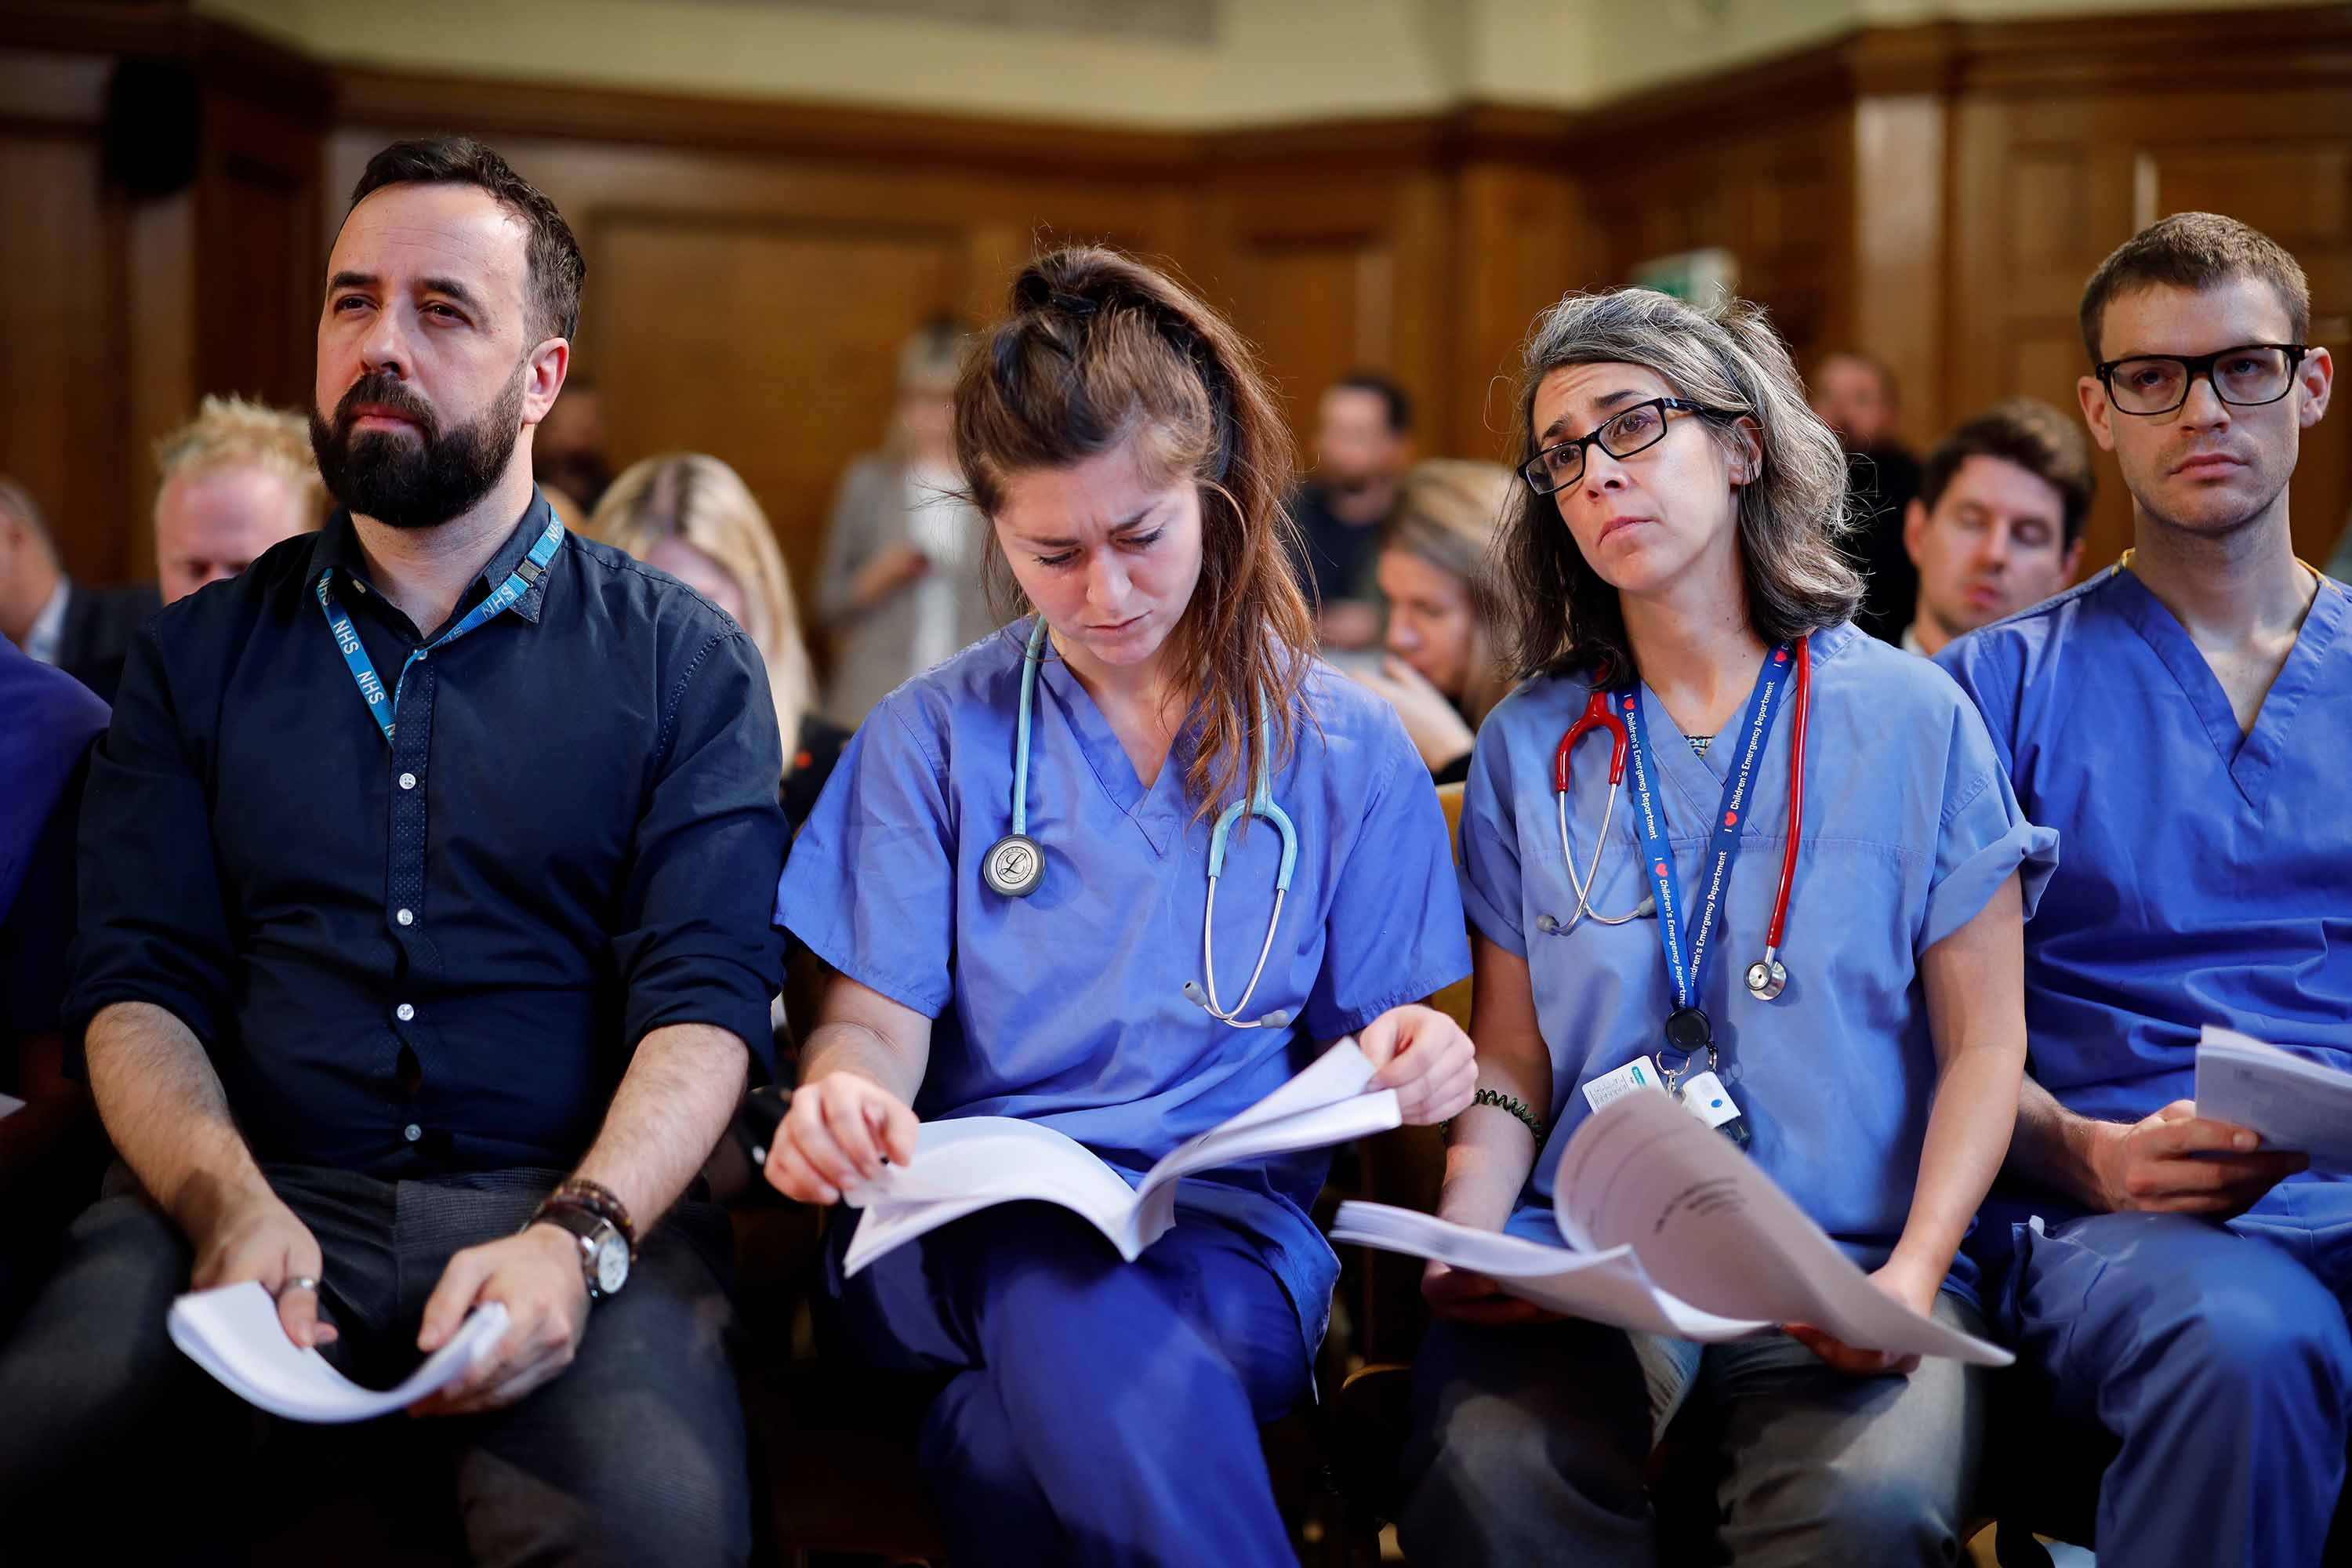 NHS workers read documents about the Conservative government's UK-US trade talks during a press conference by UK opposition Labour party leader Jeremy Corbyn in London on November 27. Photo: Tolga Akmen/AFP via Getty Images